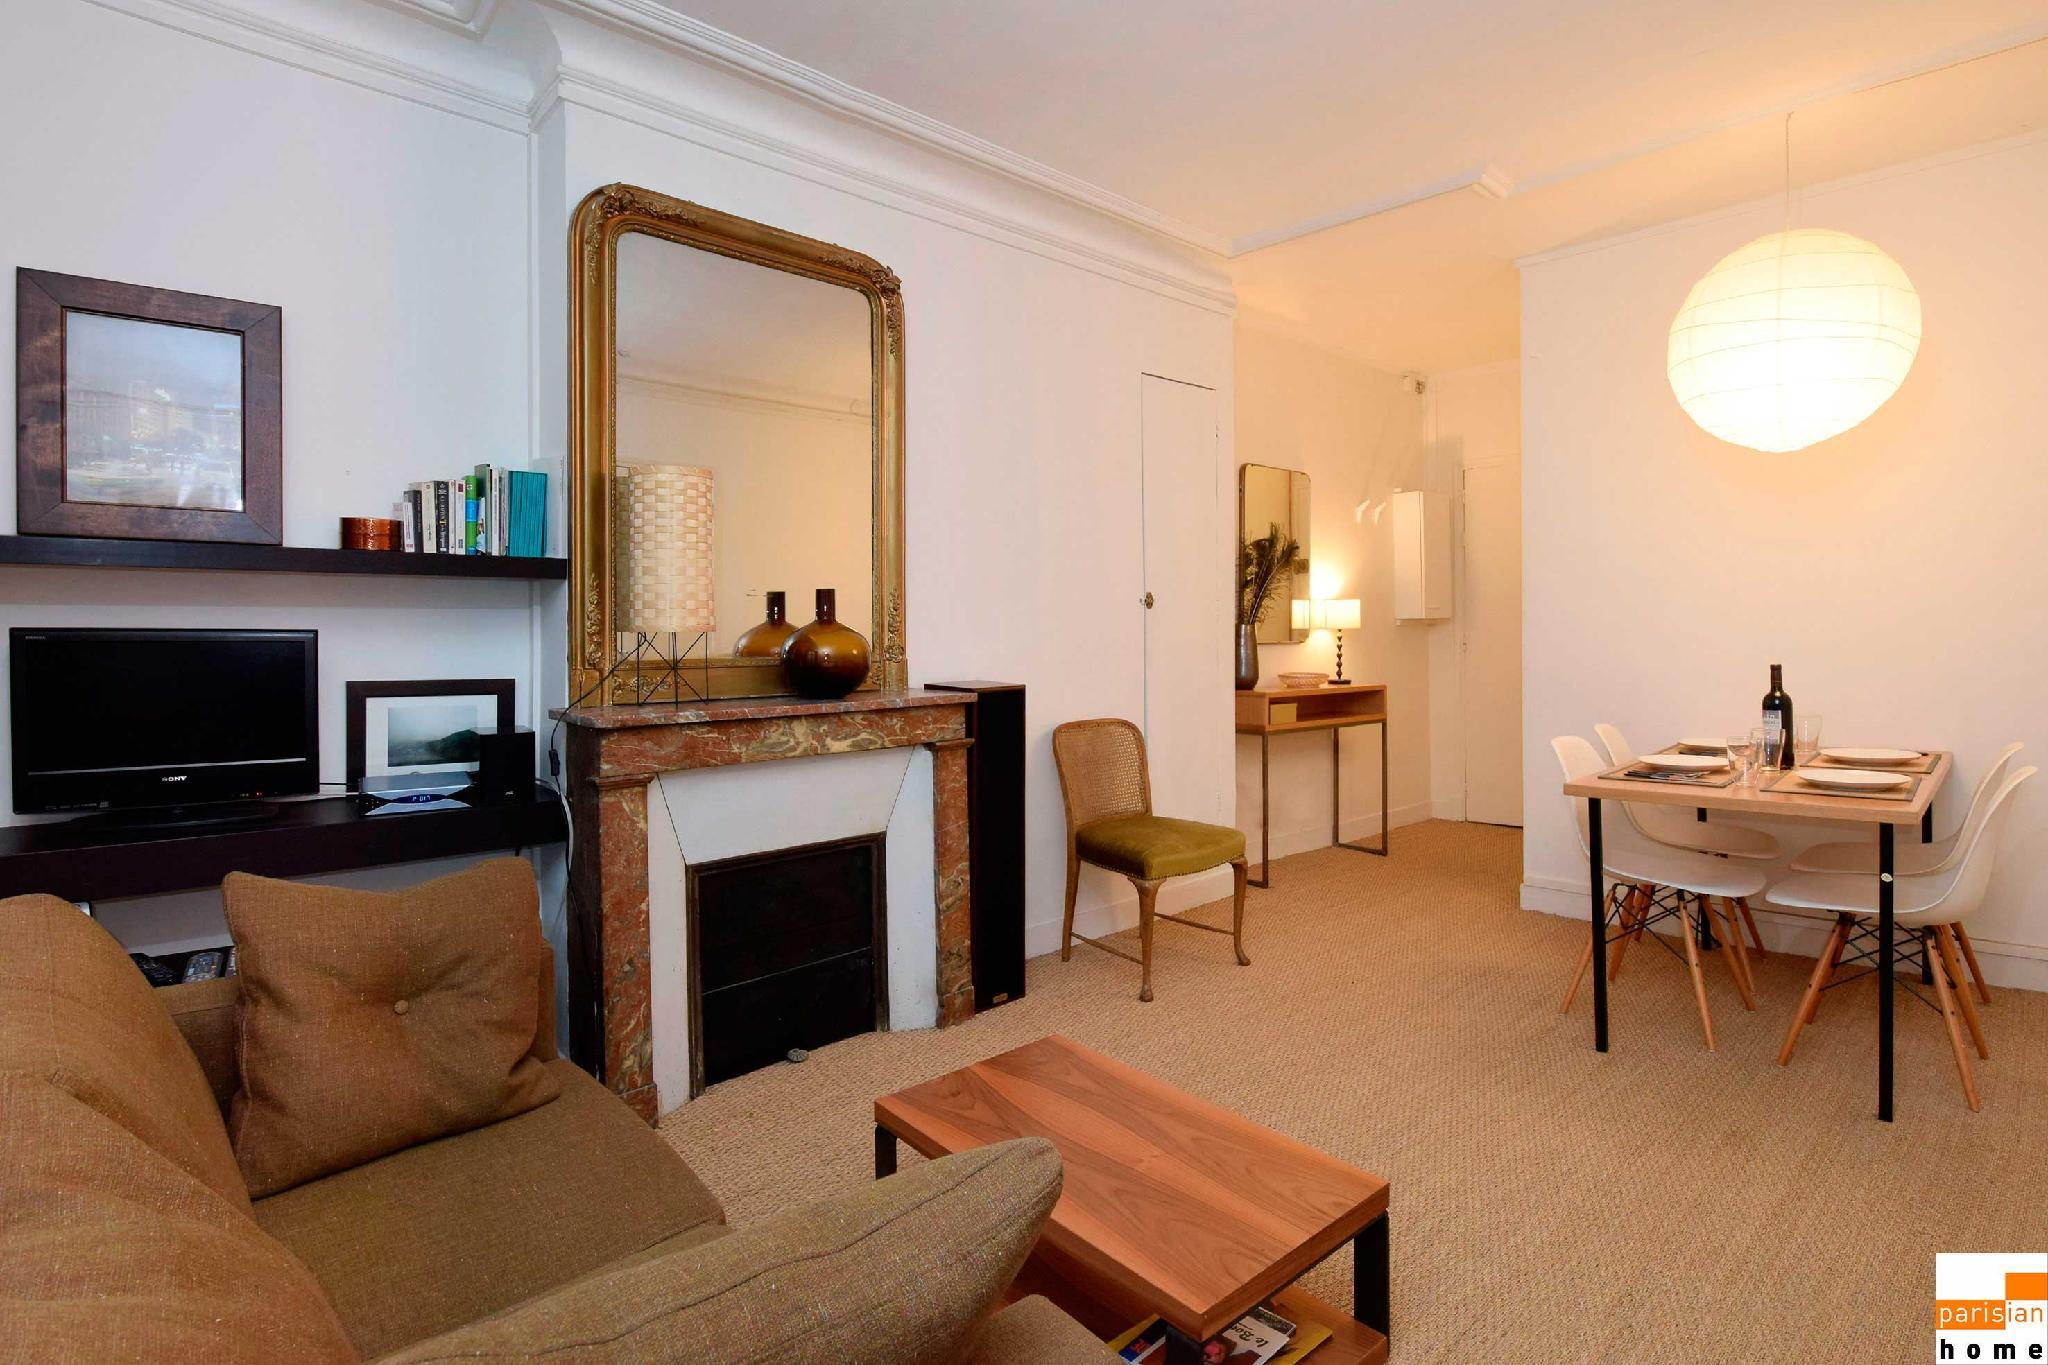 109175 - Lovely apartment for 3 people at the feet of Montmartre.